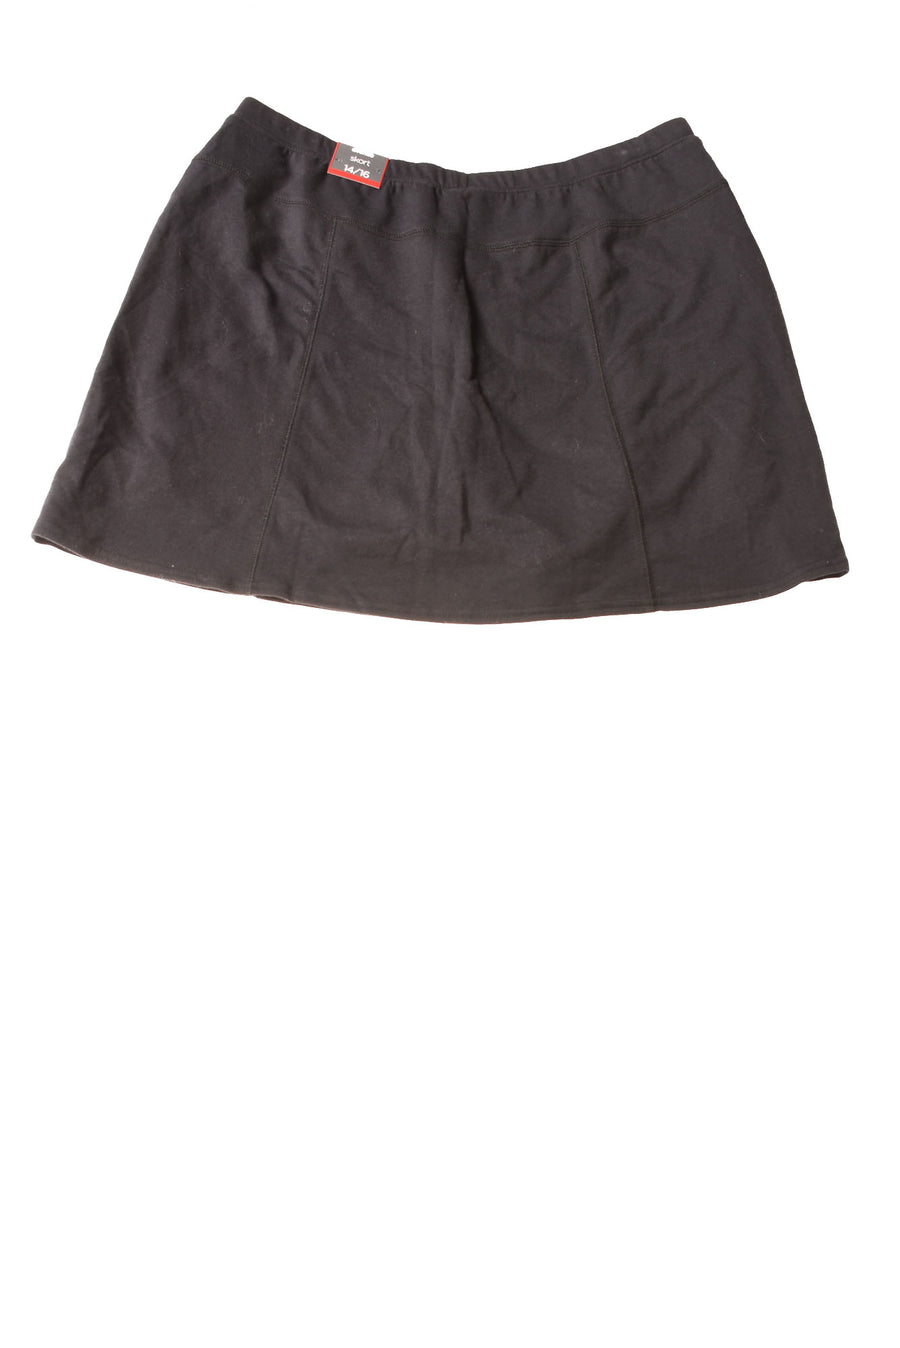 NEW Avenue Women's Shorts 14/16 Black